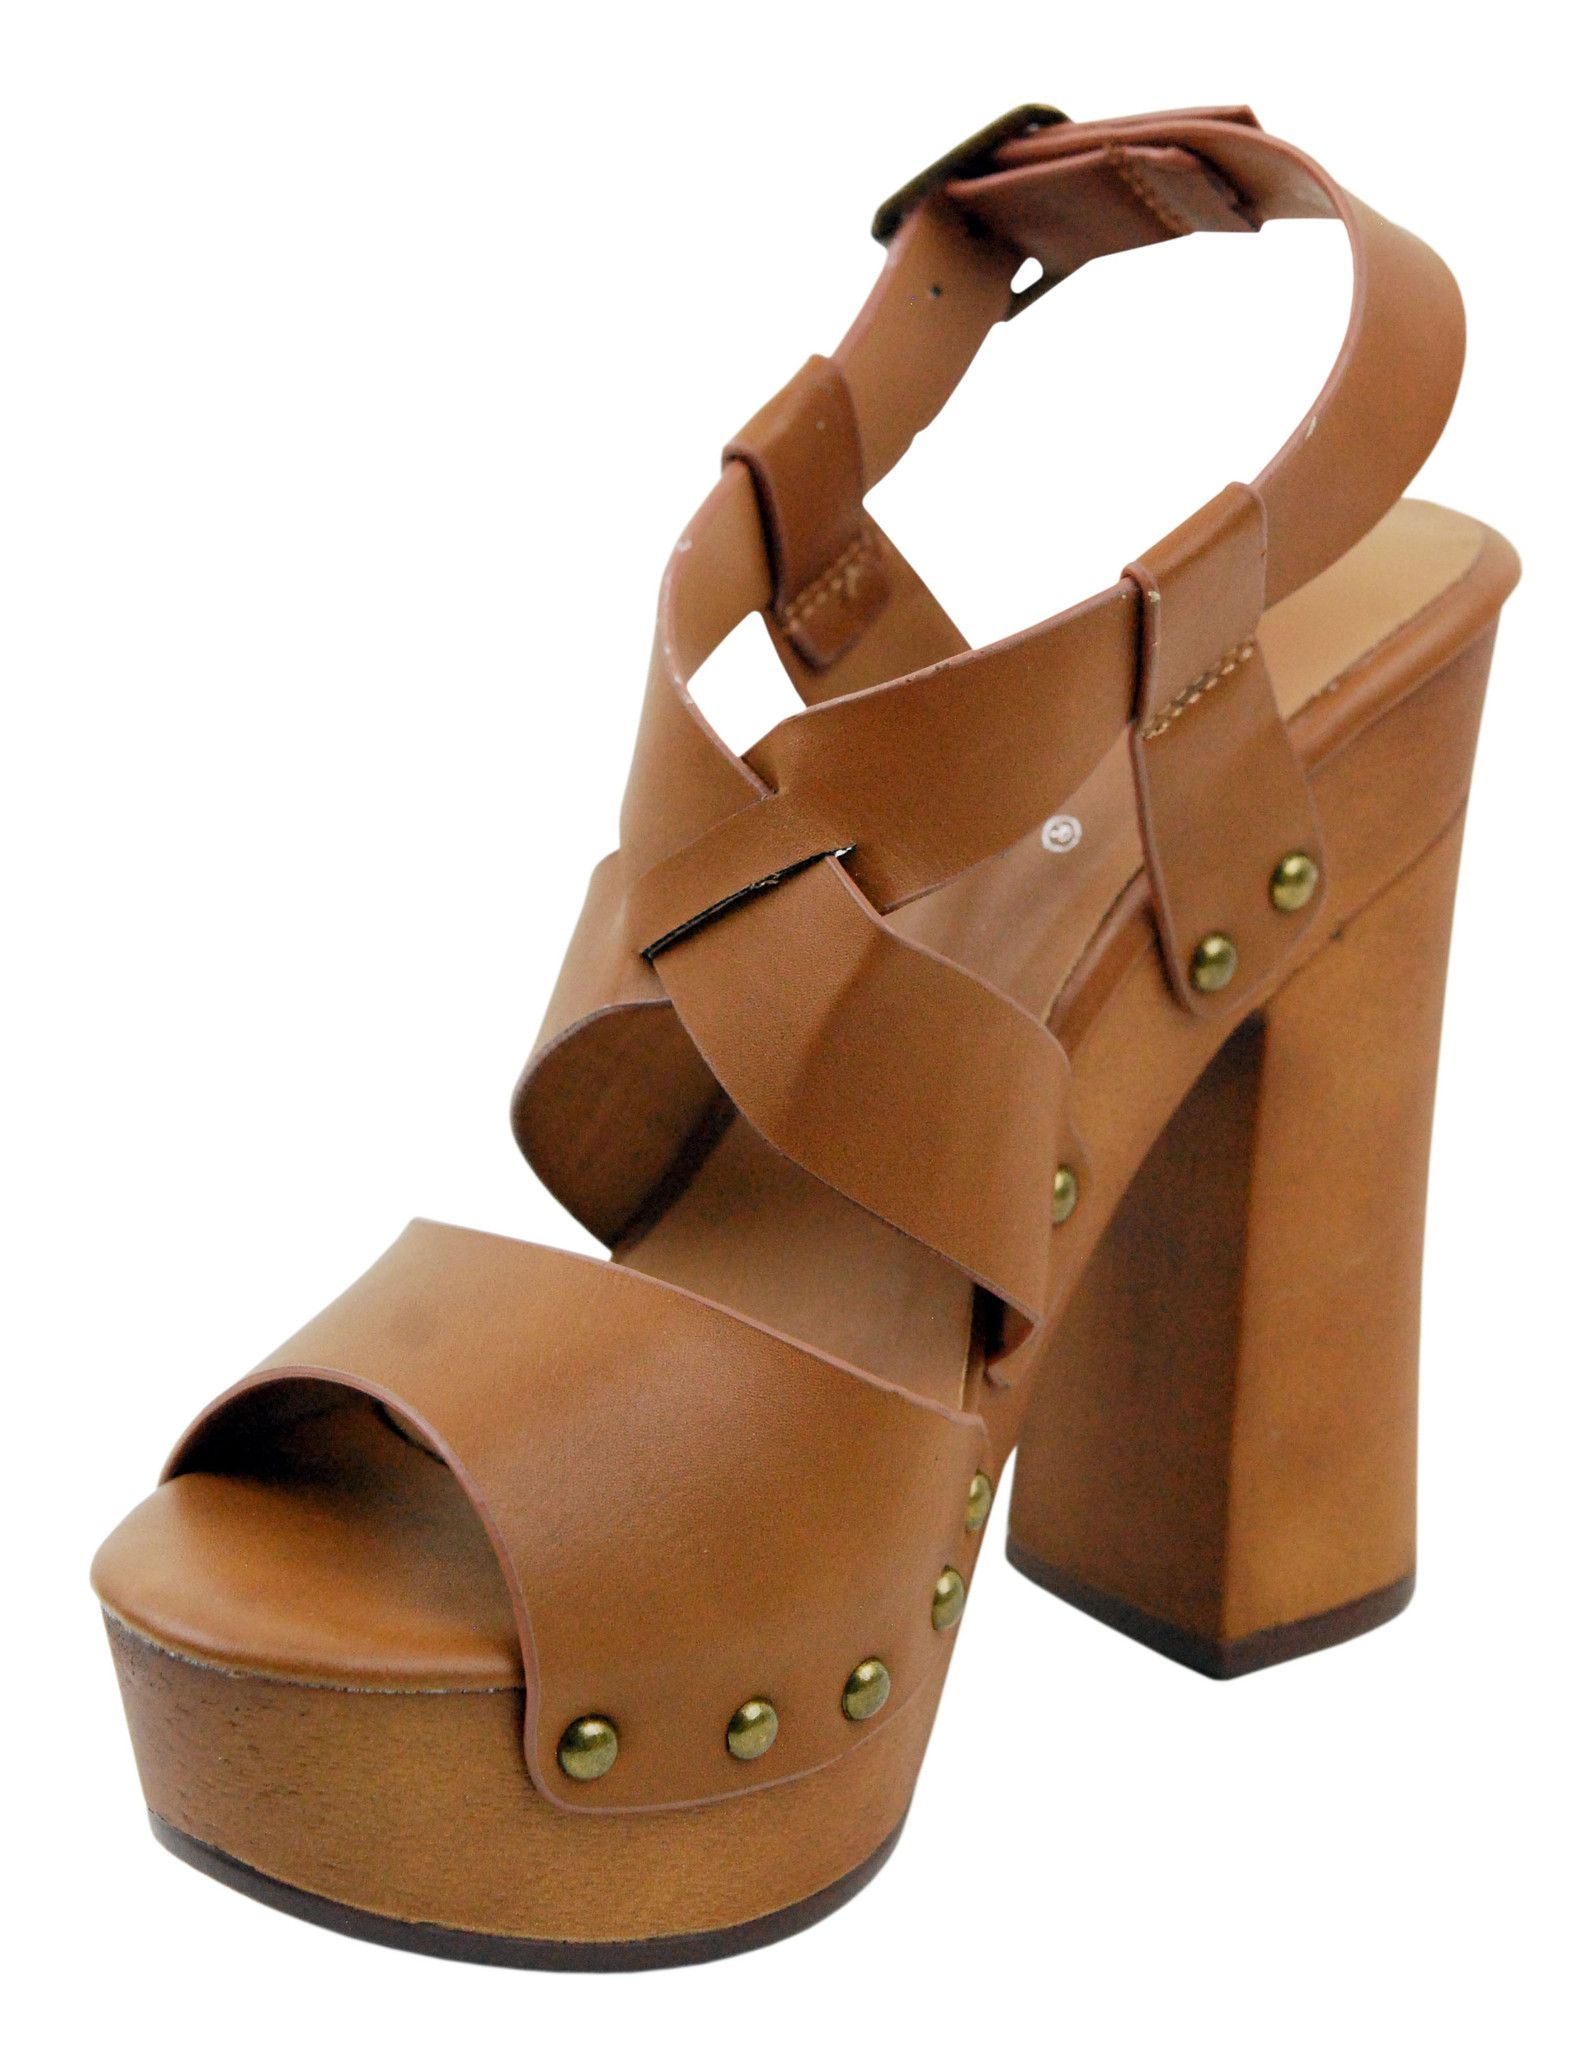 0b37e918abc Womens Wedge Platform Chunky Wood High Heel Sandals Retro Gladiator Prom  Shoes (Sega-04)